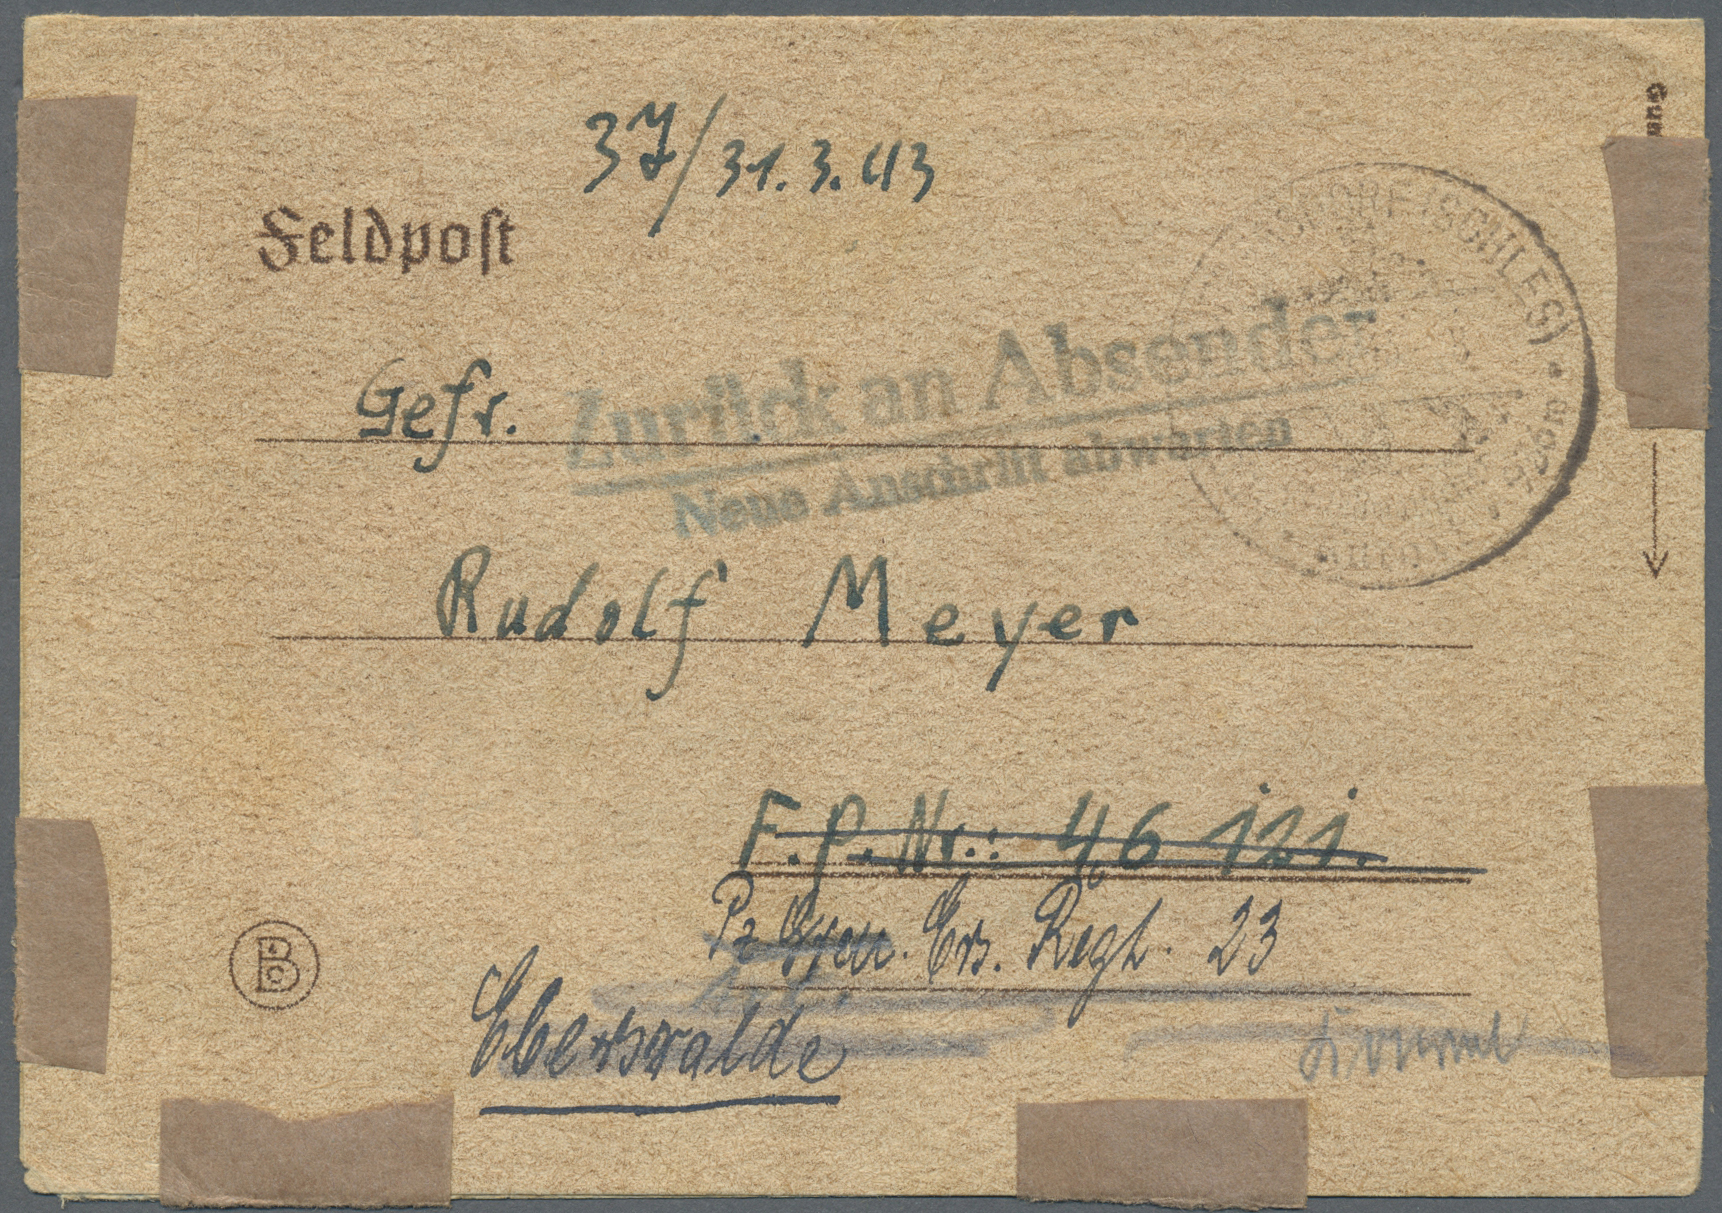 Lot 37583 - feldpost 2. weltkrieg  -  Auktionshaus Christoph Gärtner GmbH & Co. KG Collections Germany,  Collections Supplement, Surprise boxes #39 Day 7